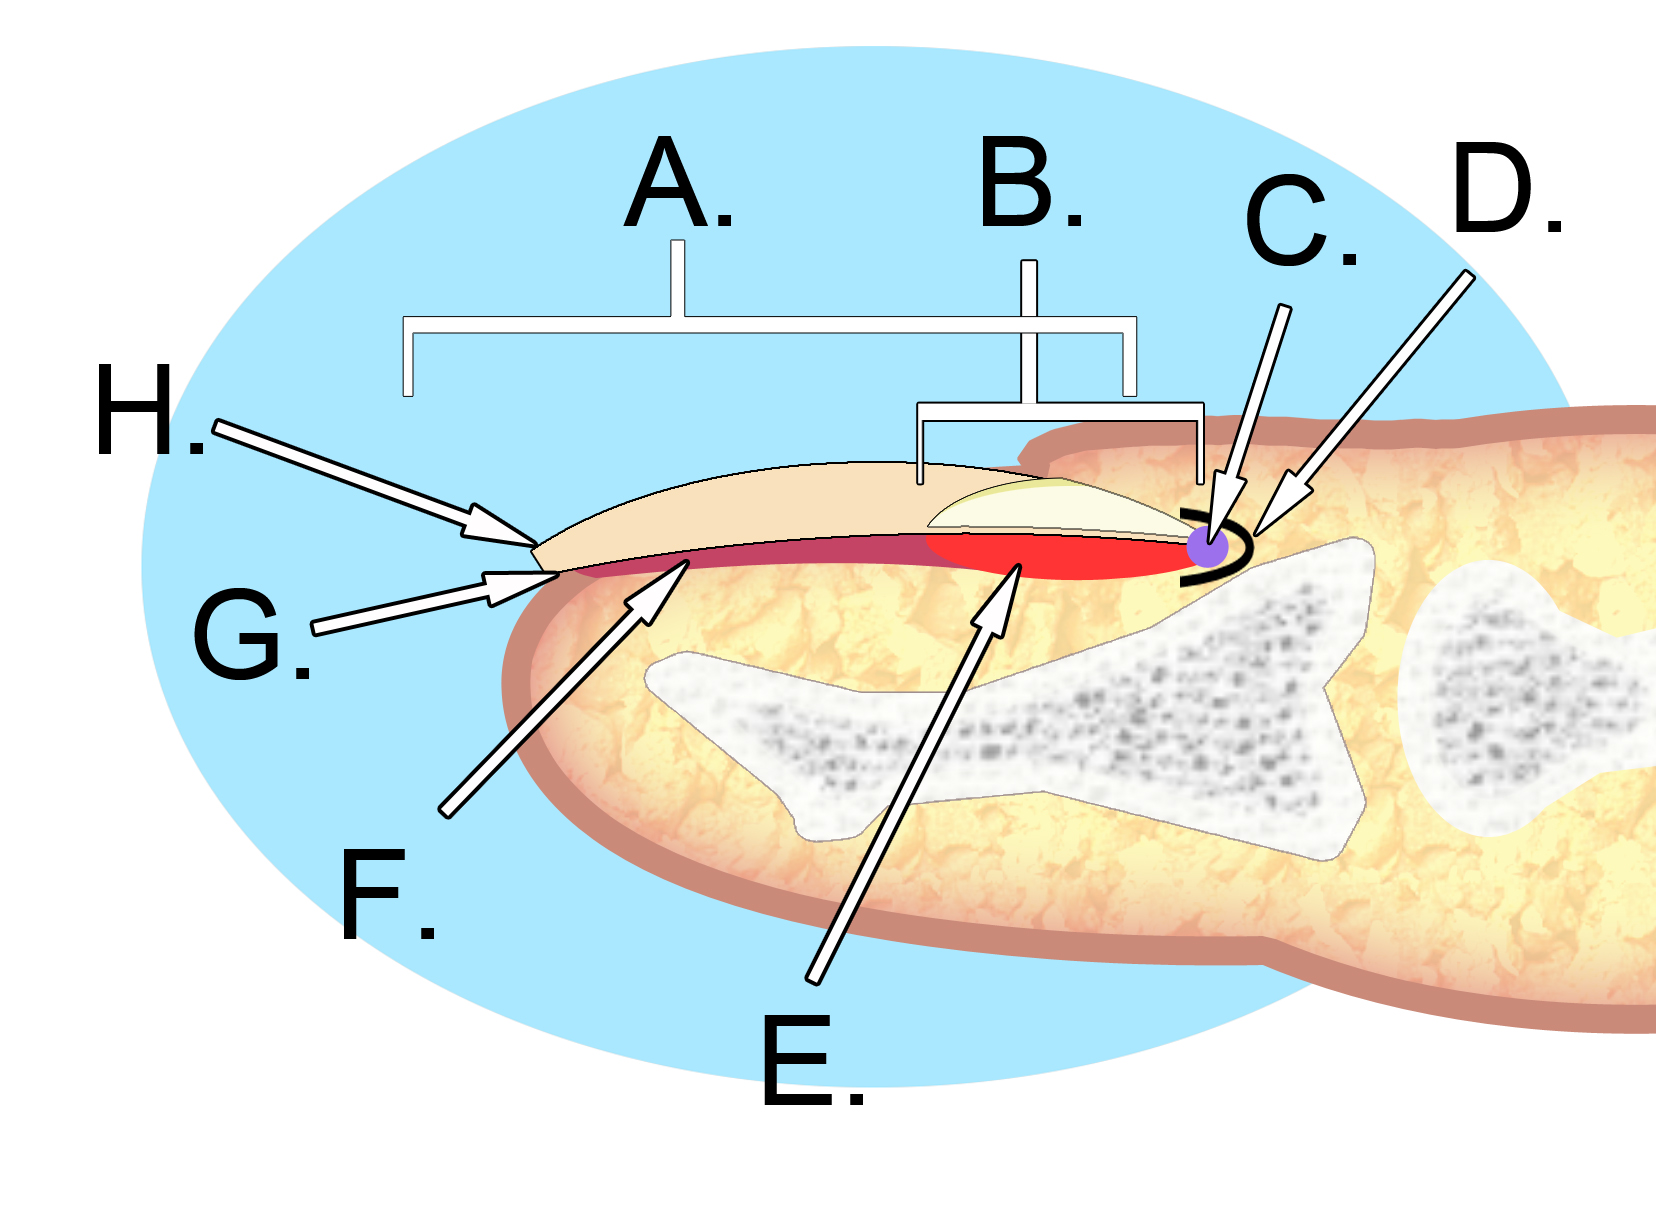 File:Human nail anatomy.jpg - Wikimedia Commons